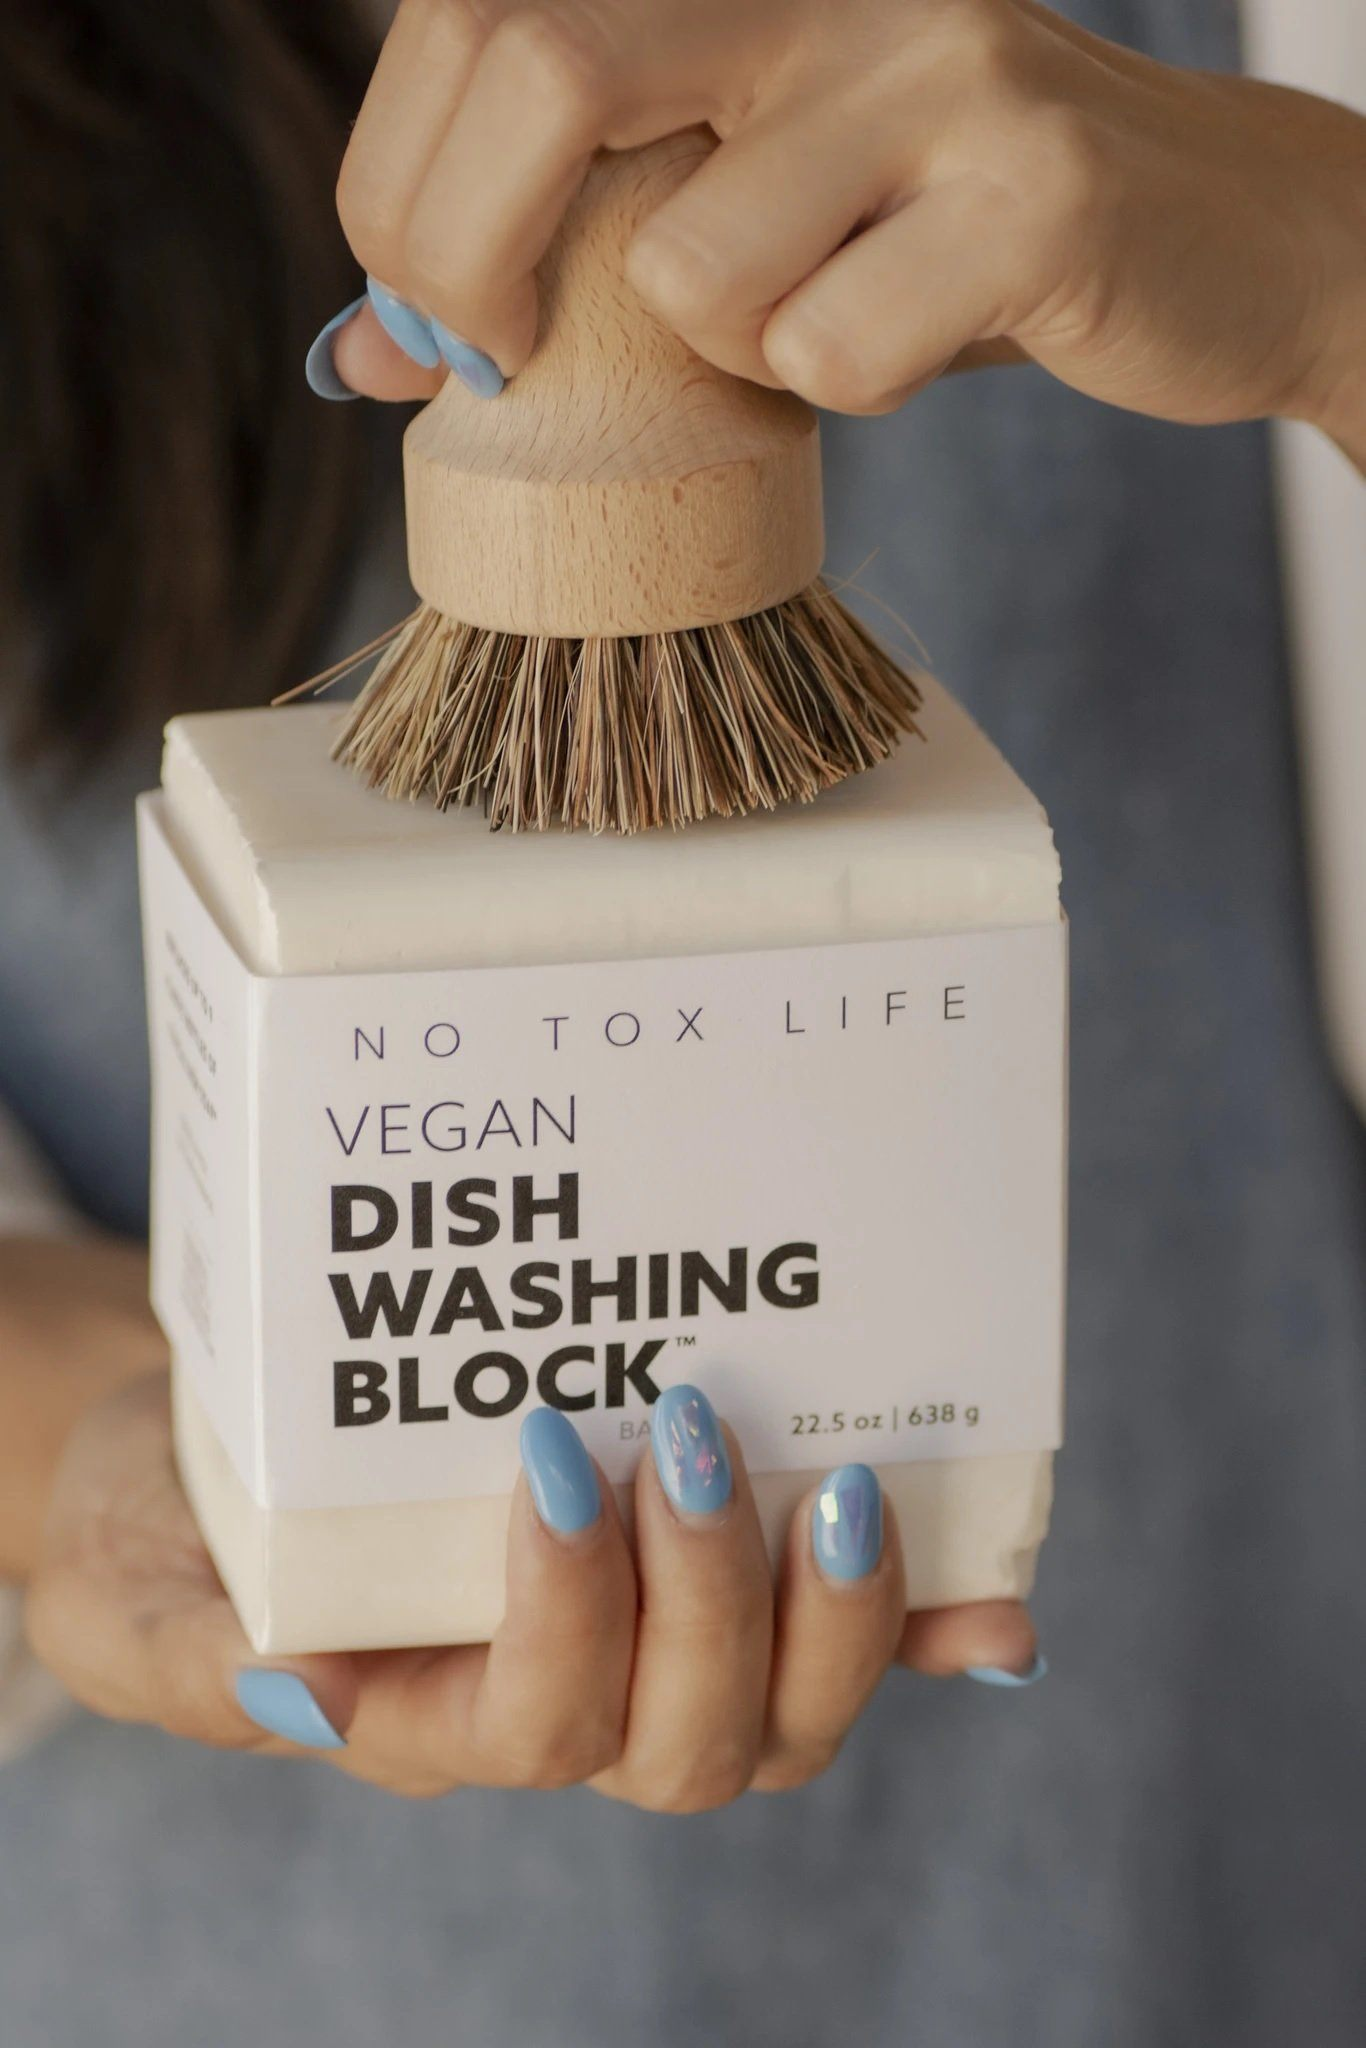 XL VEGAN DISH WASHING BLOCK | NO TOX LIFE